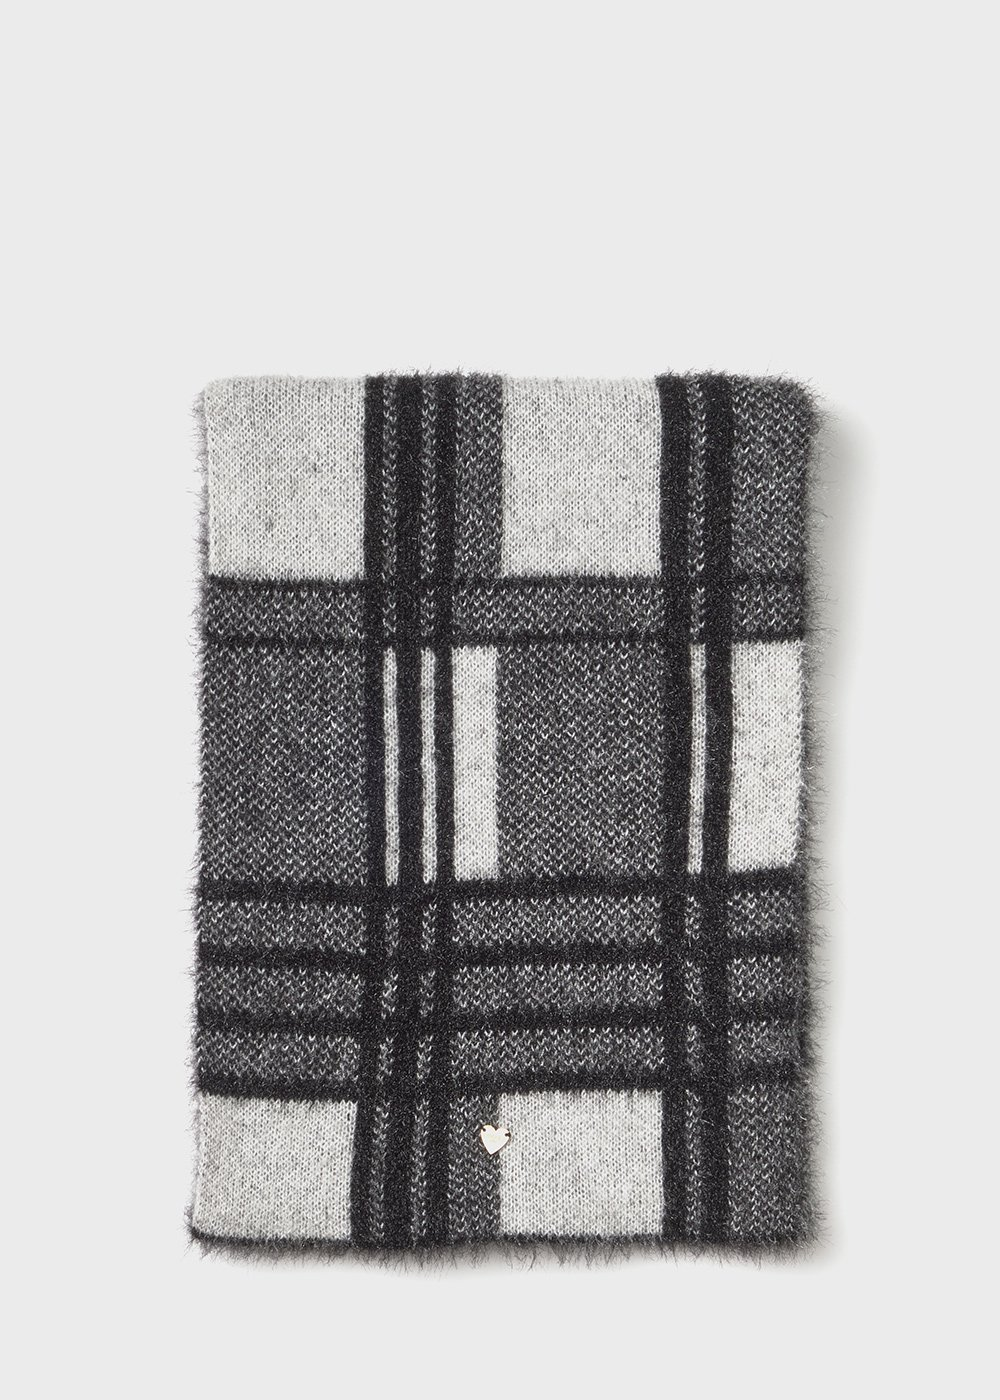 fur - effect Sadry scarf with check print - Black /  White - Woman